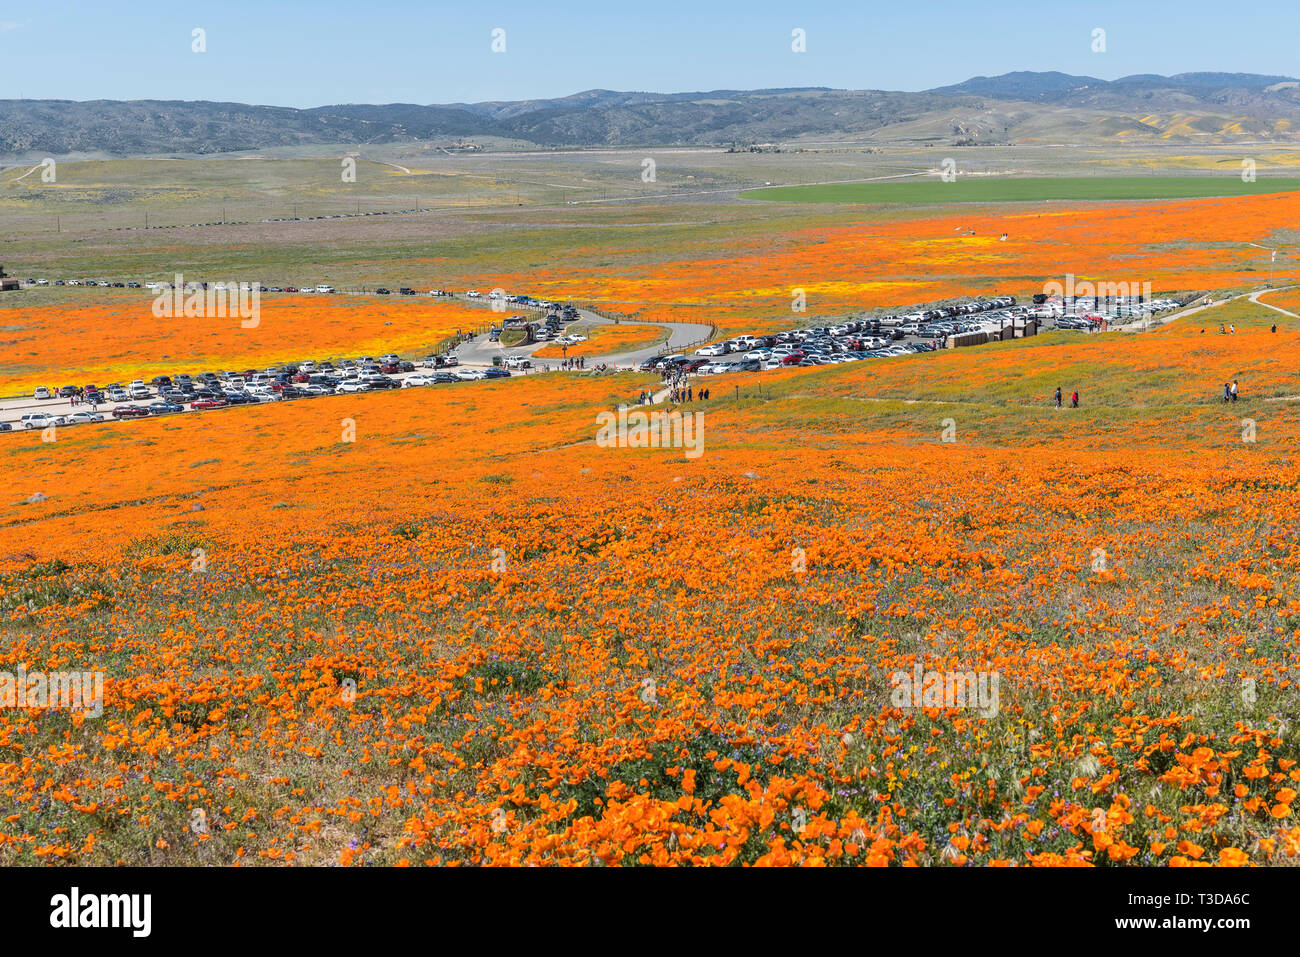 Lancaster, California, USA - April 2, 2019:  Line of cars waiting to enter parking lots at Antelope Valley California Poppy Preserve Park. - Stock Image